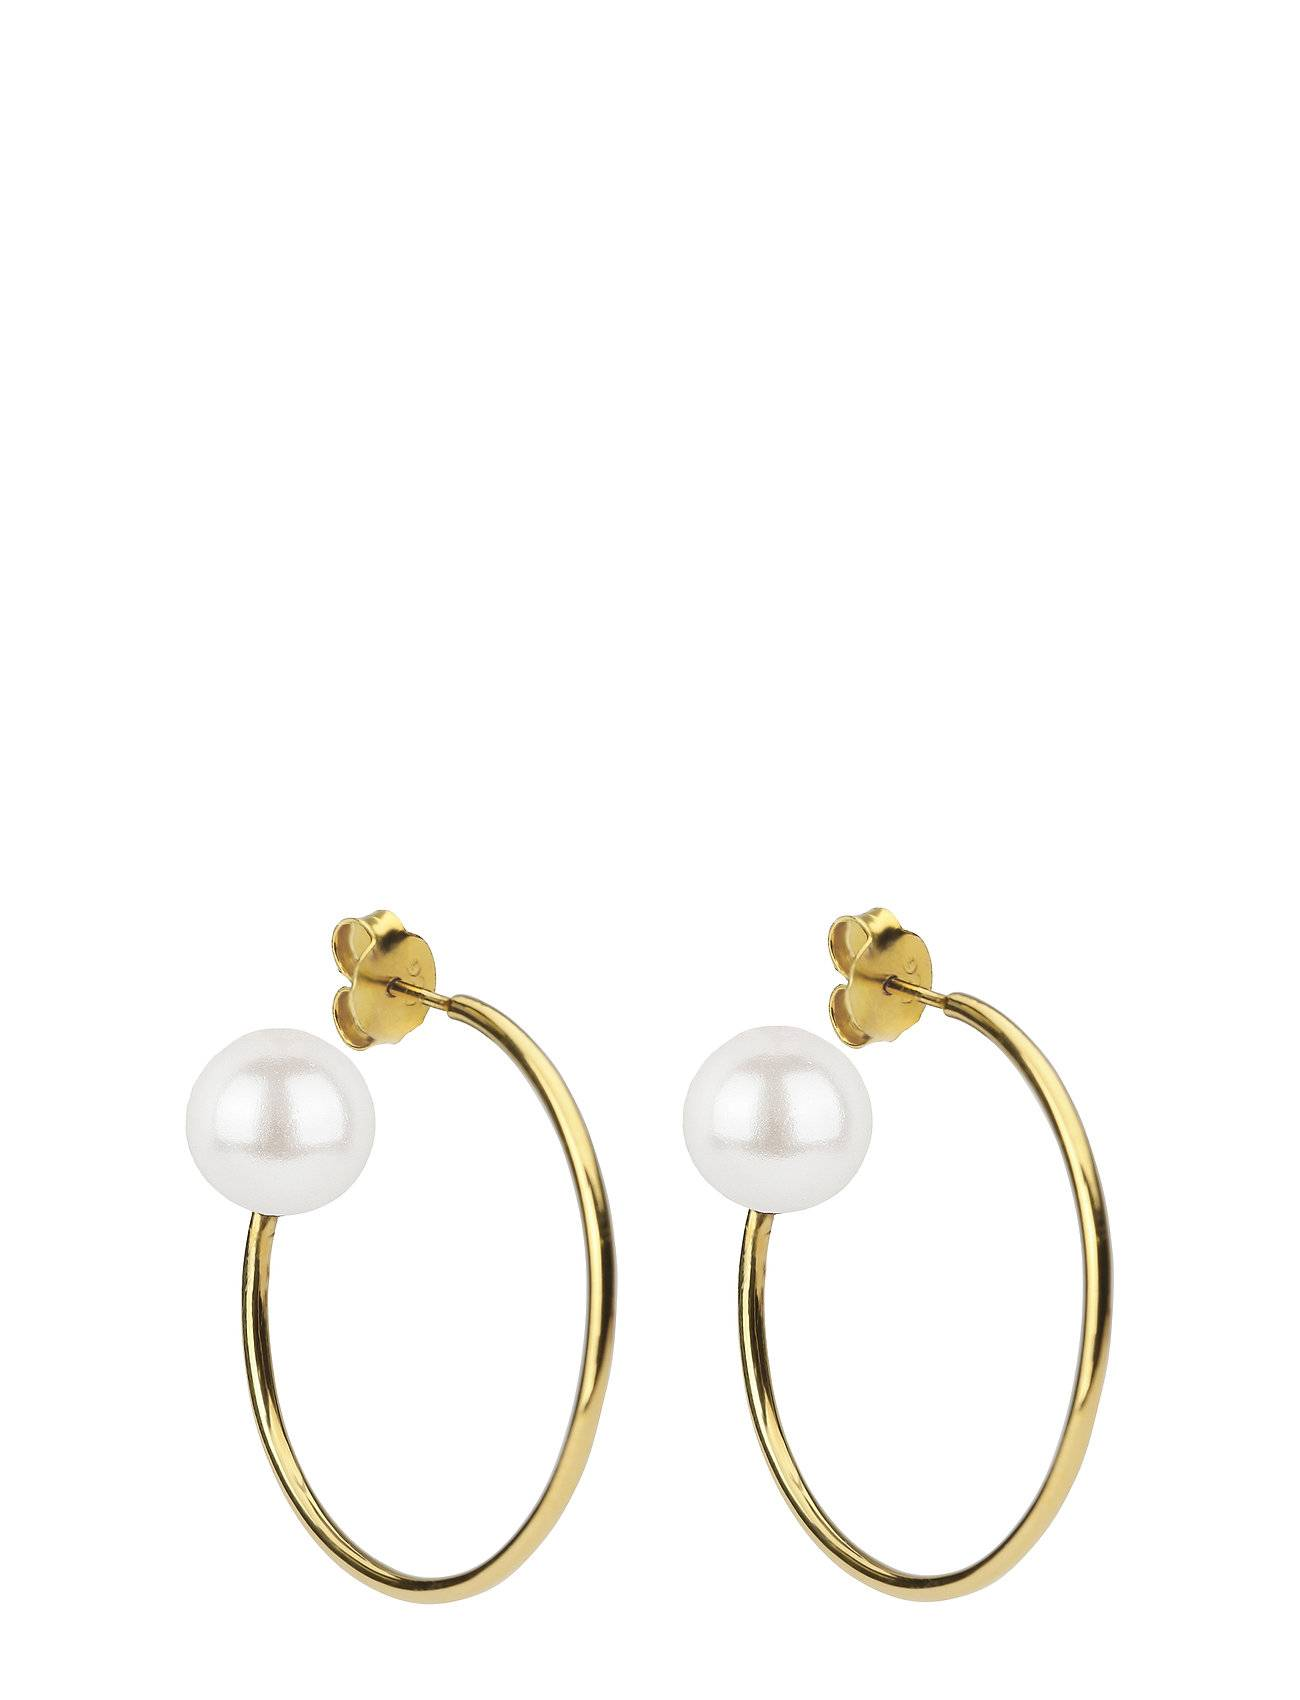 Syster P Pearly Big Hoops Gold White Accessories Jewellery Earrings Hoops Kulta Syster P